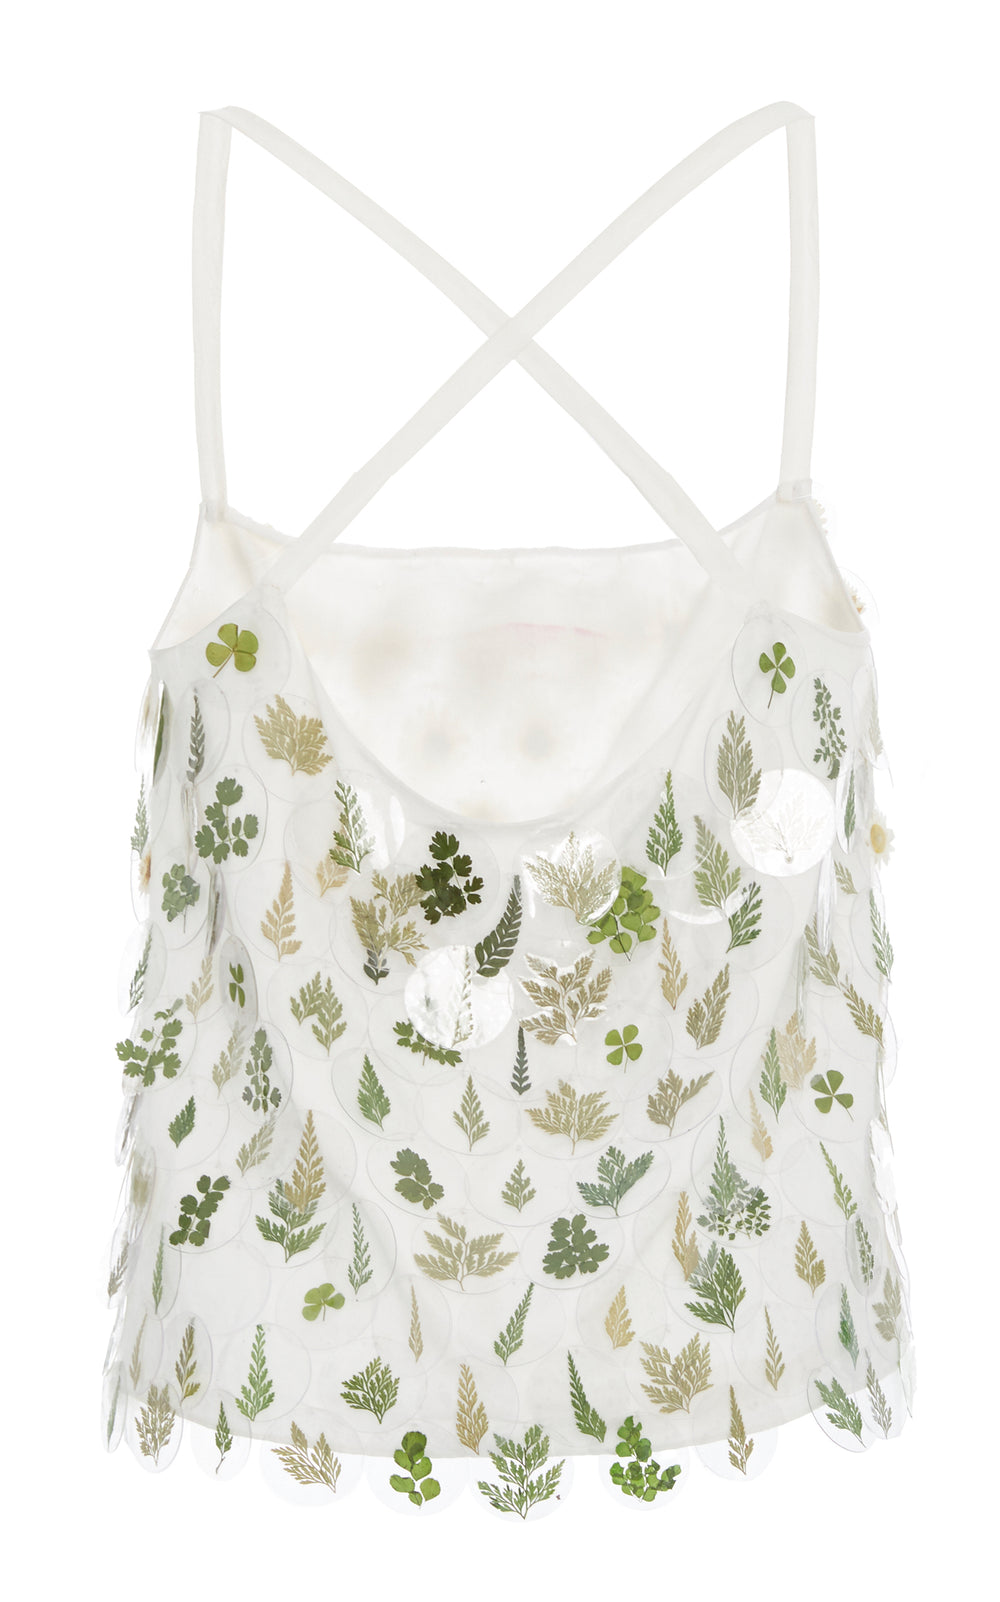 Pocket Full of Posies Cami